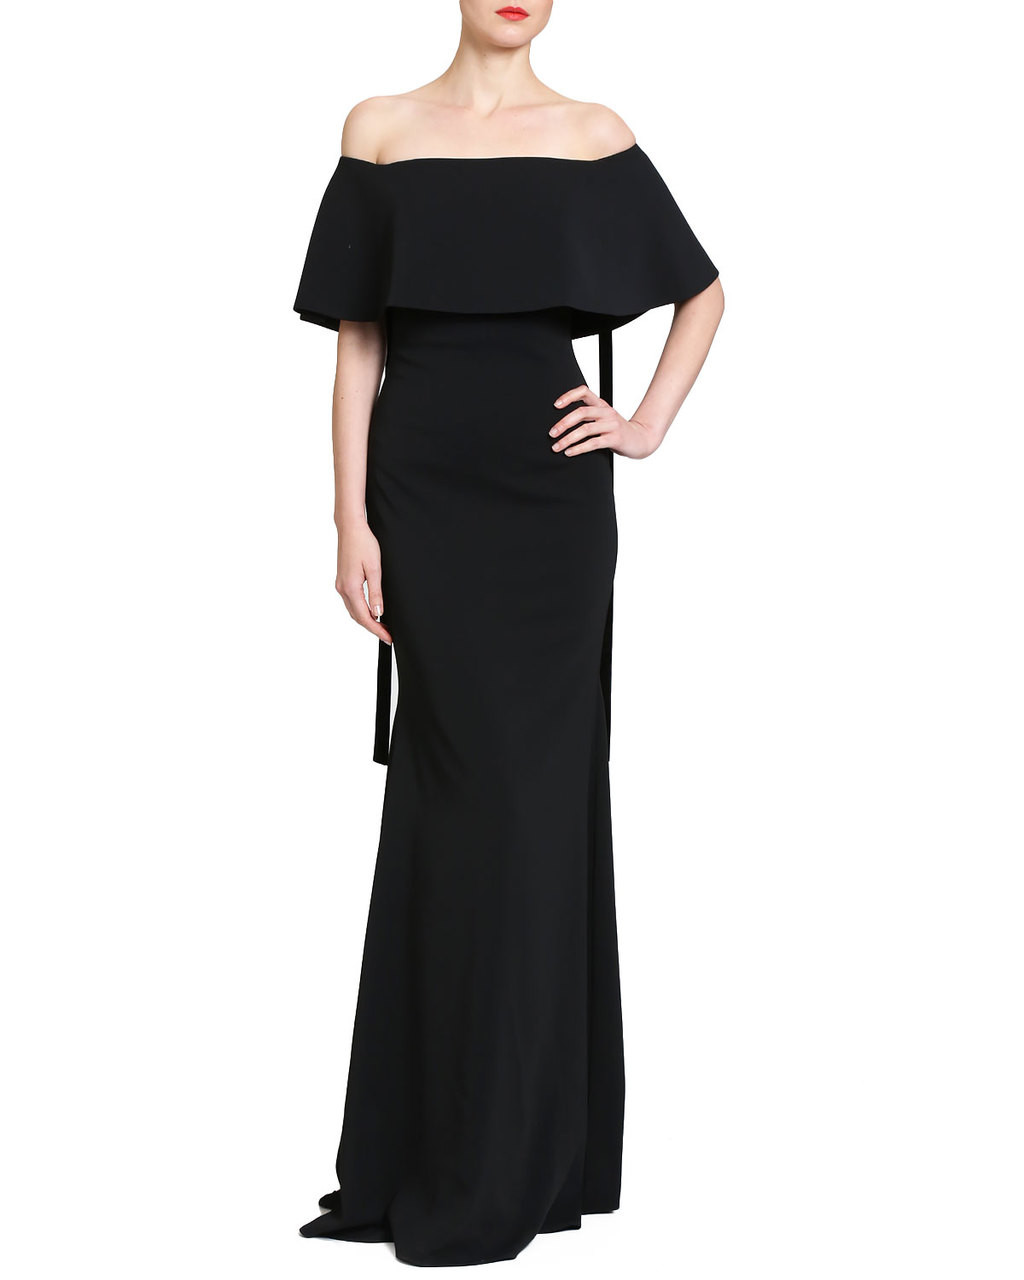 4312028f7981 Runway Ribbon Laces Cape Evening Gown by Badgley Mischka